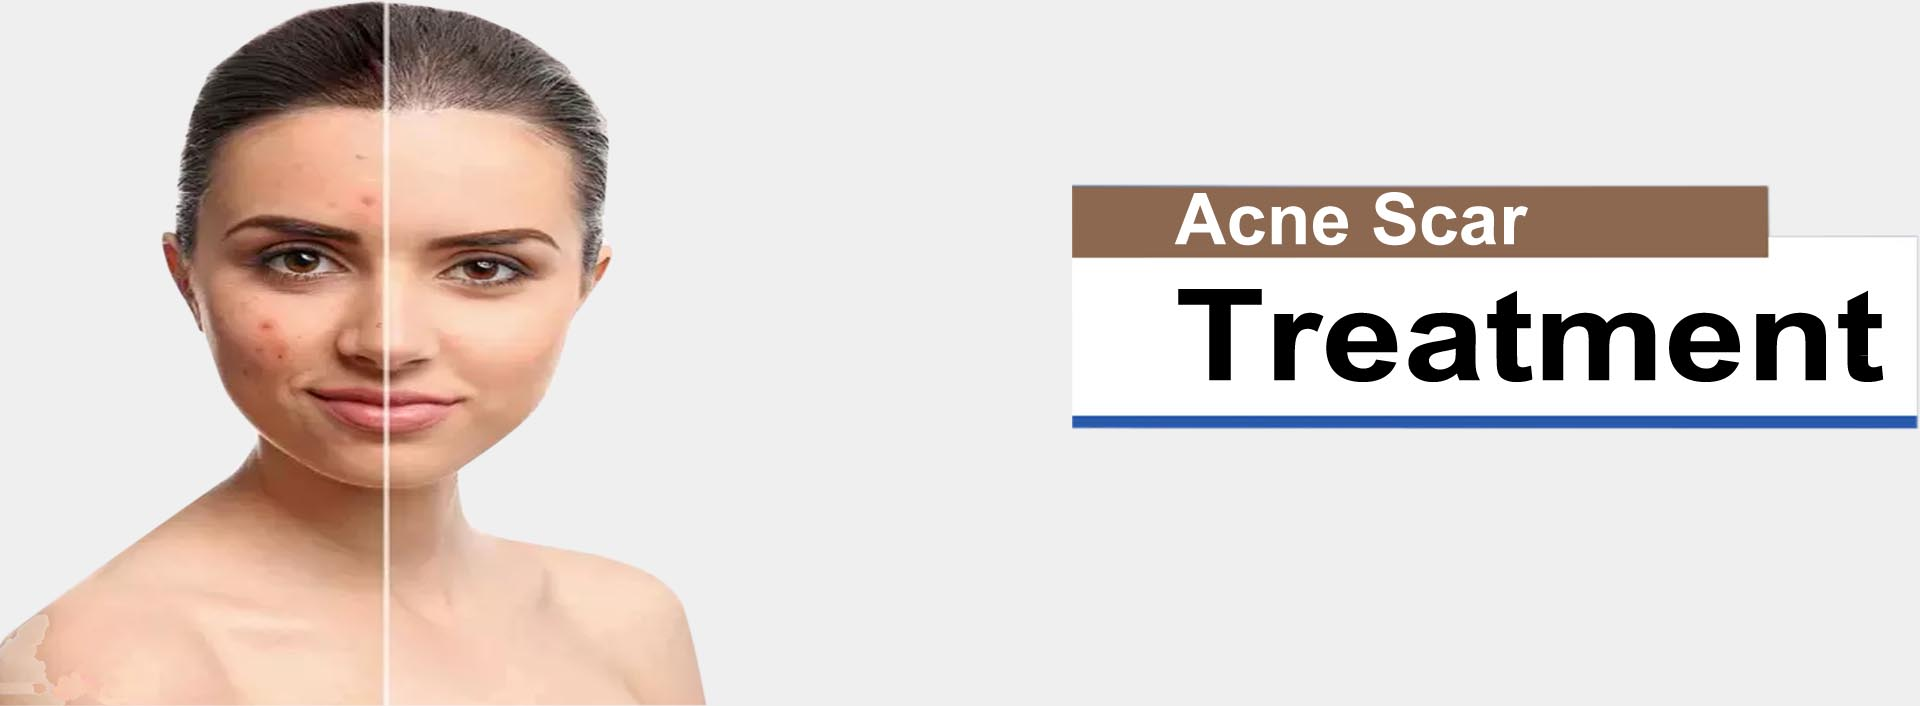 Acne Treatment in Gurgaon   Acne Scar Removal Treatment   Dr